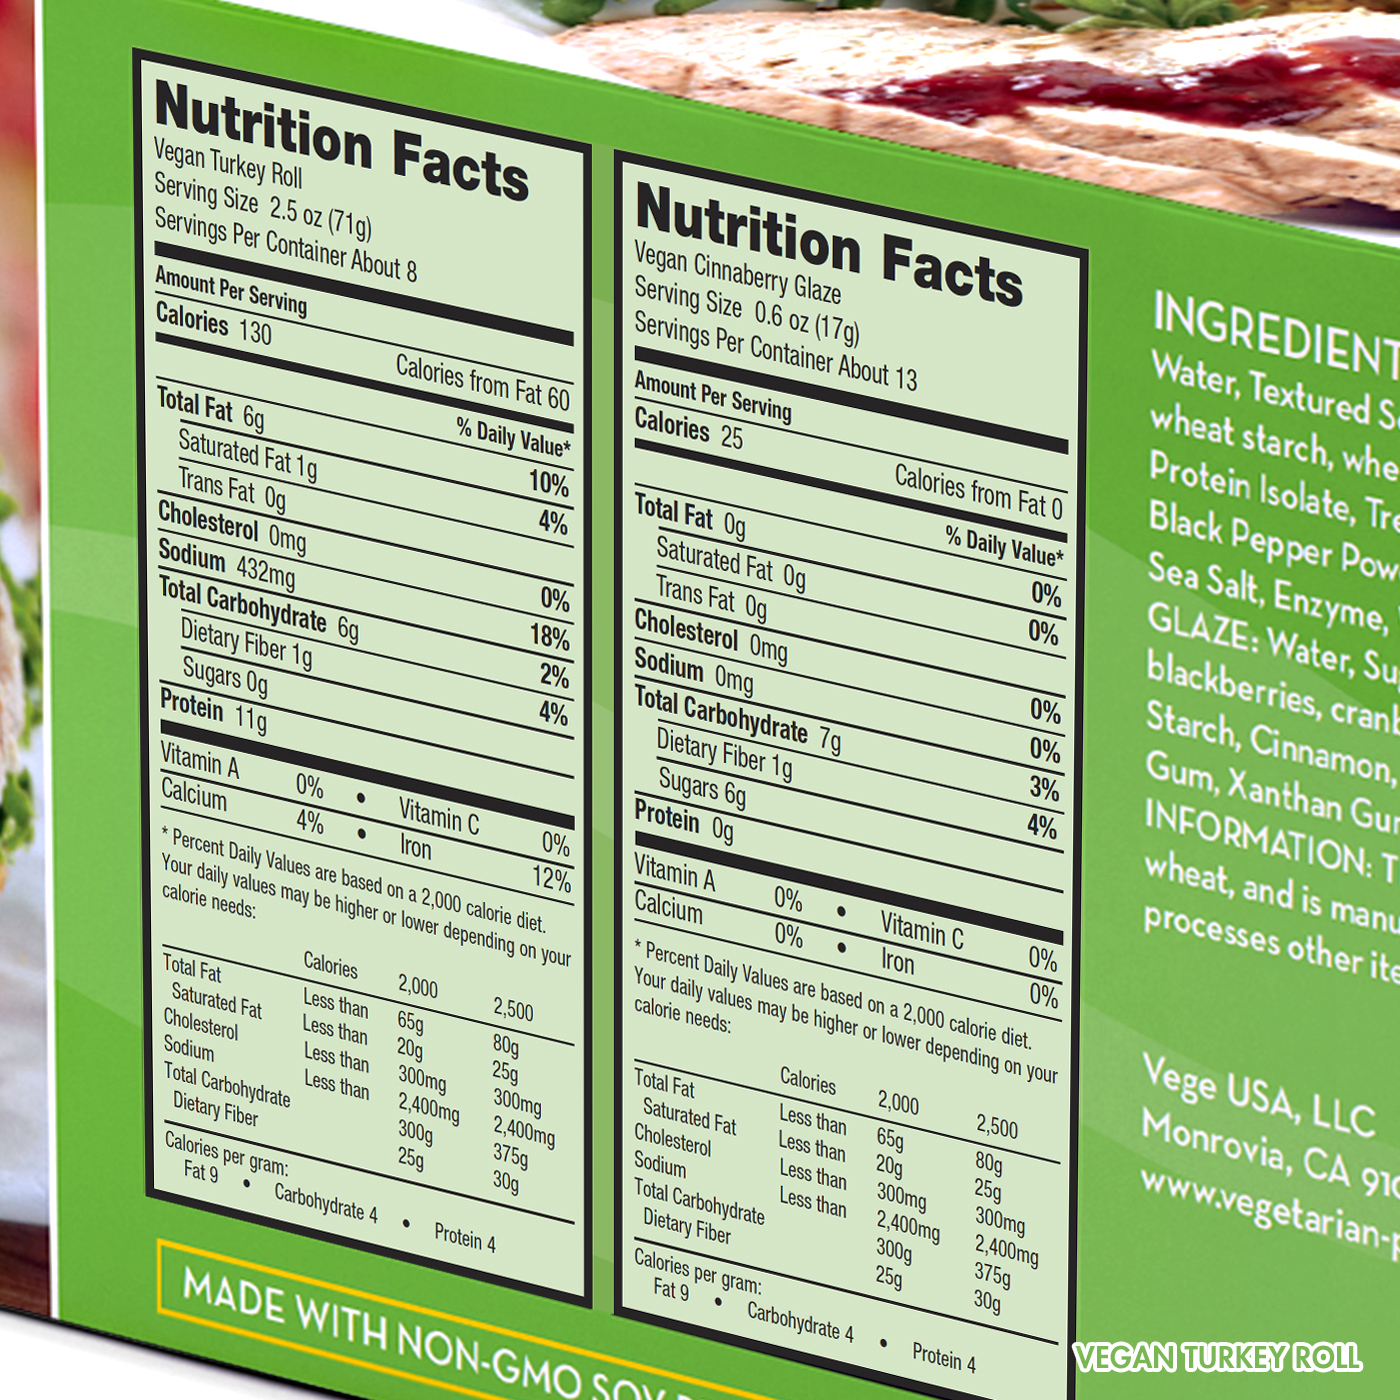 Vegan Turkey Roll Nutrition Facts